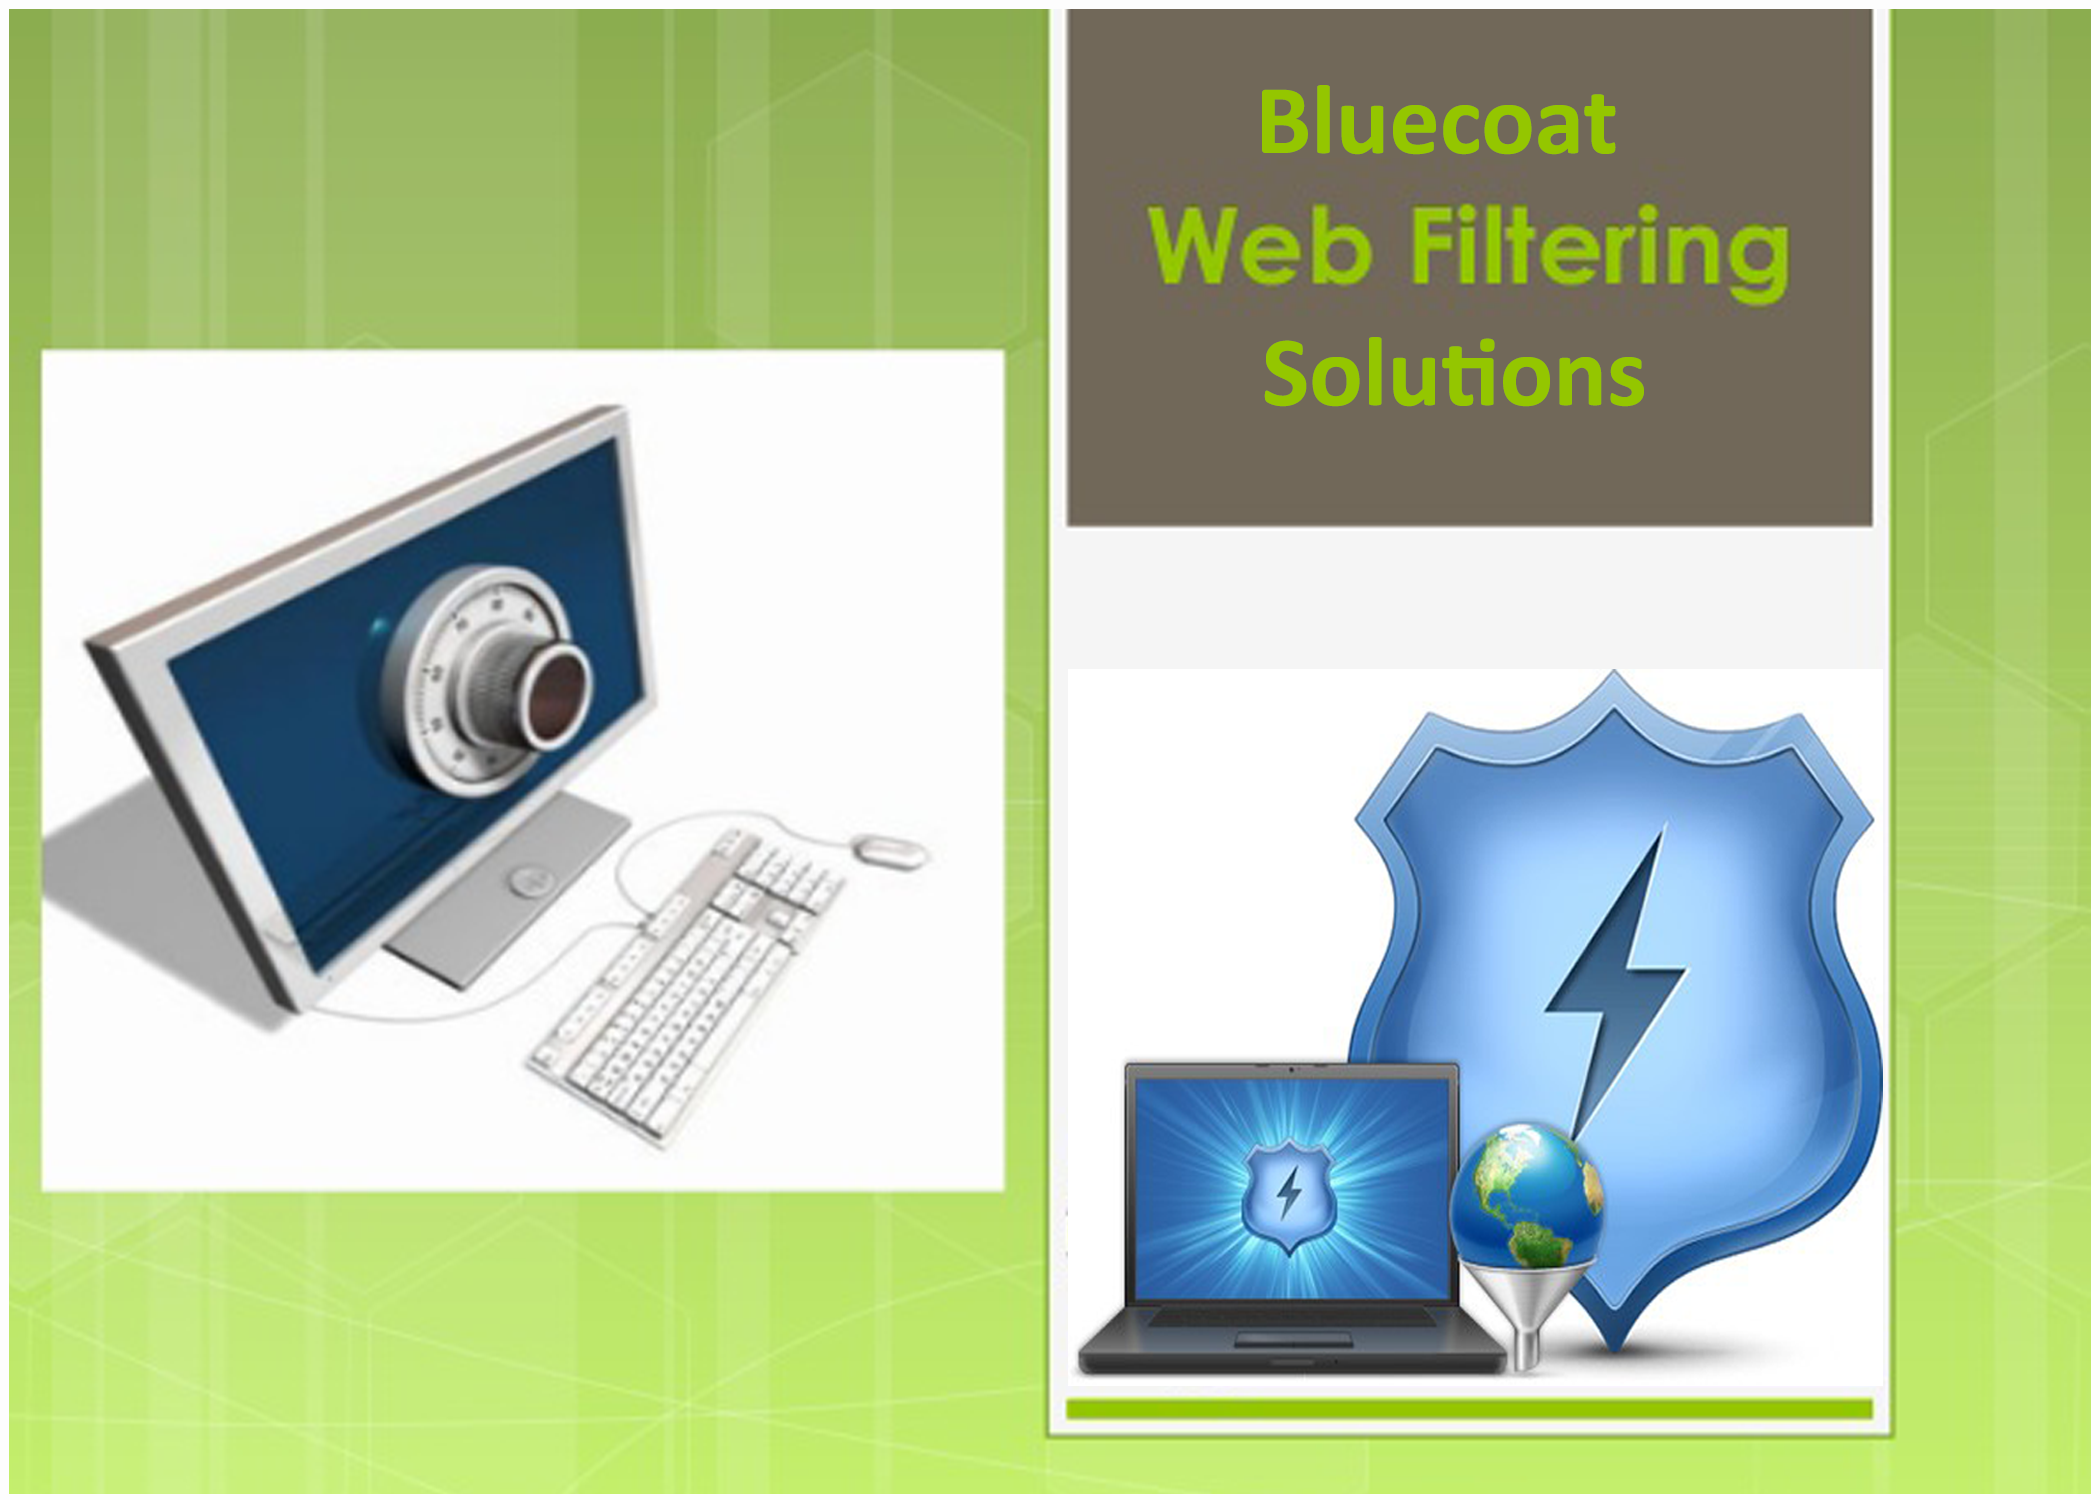 #CloudAceTechnologies is offering In #BlueCoat WebFilter categorizes billions of web pages in more than 50 languages into 85 useful categories that can be easily managed by #IT administrators. http://www.cloudace.in/solution/bluecoat-web-filtering-solutions/